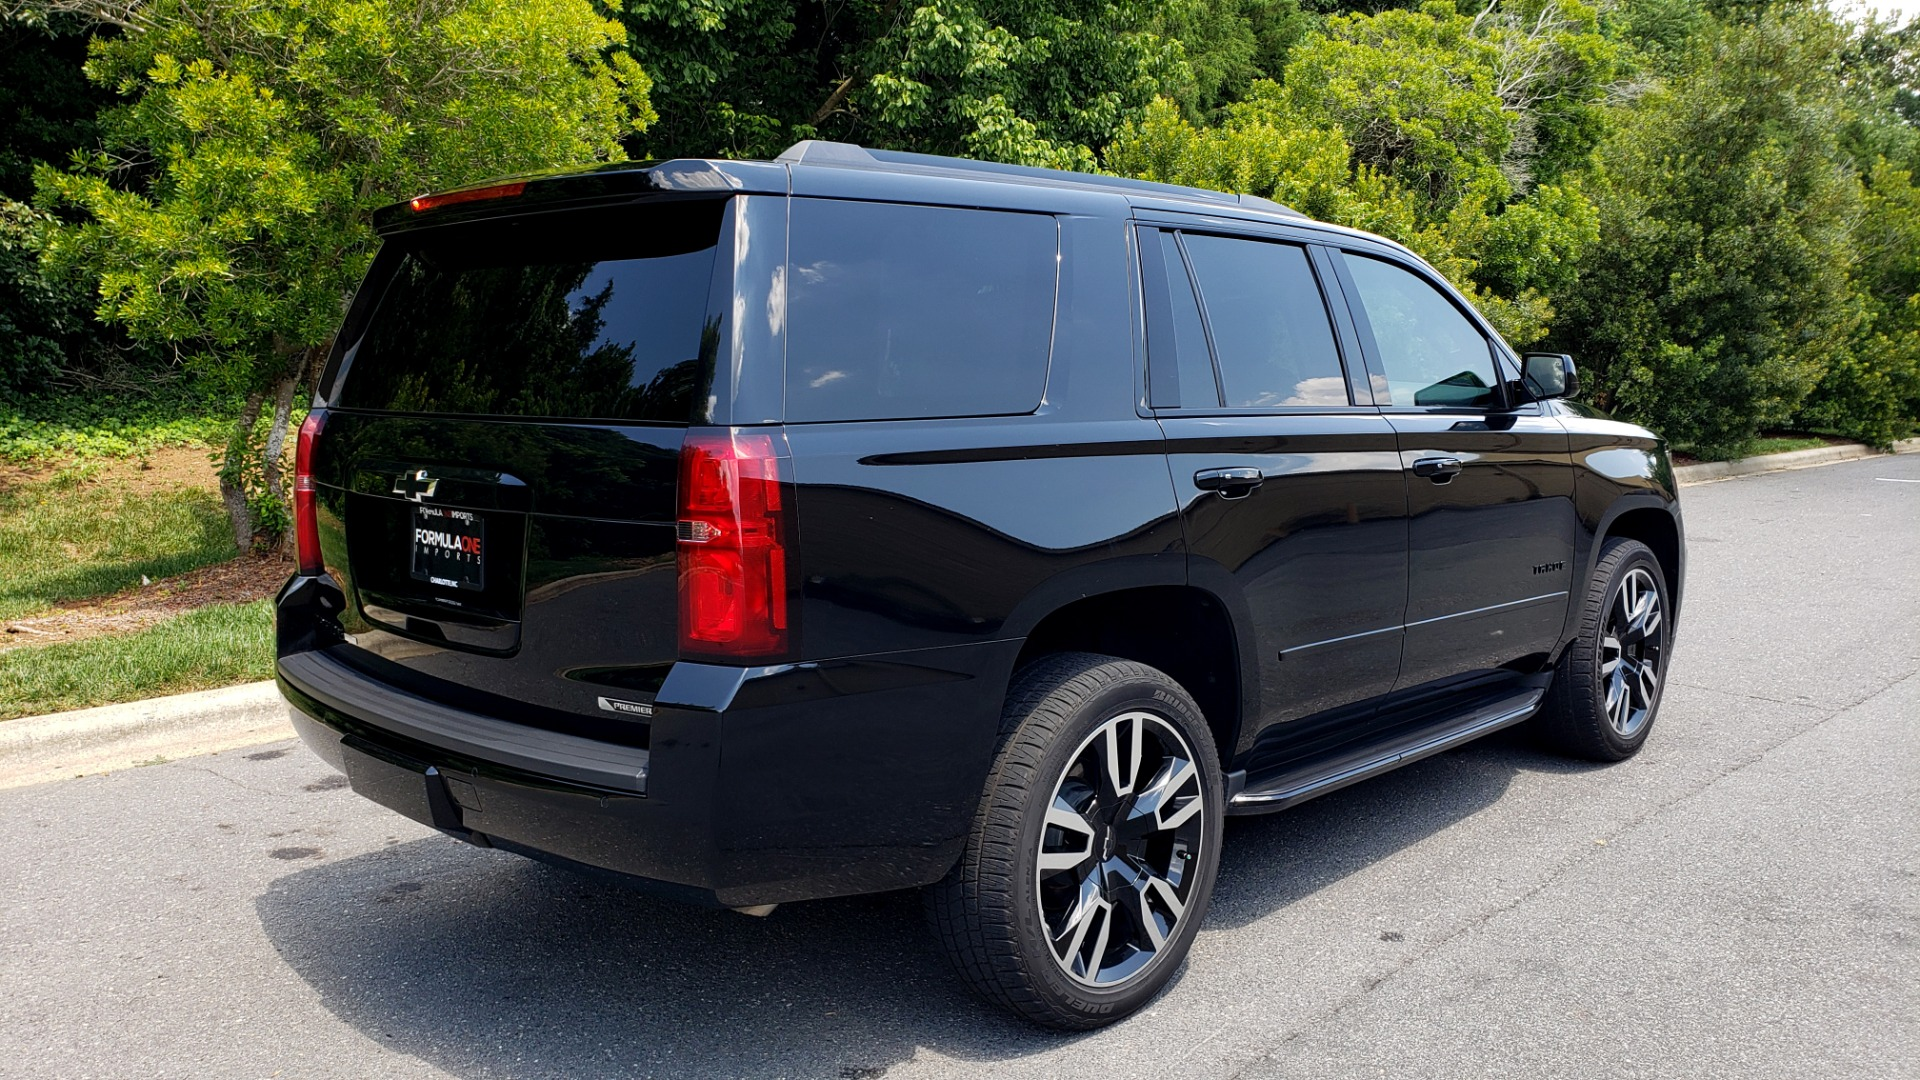 Used 2018 Chevrolet TAHOE PREMIER 4WD / RST EDIT / NAV / SUNROOF / CAMERA / 3-ROW for sale Sold at Formula Imports in Charlotte NC 28227 6